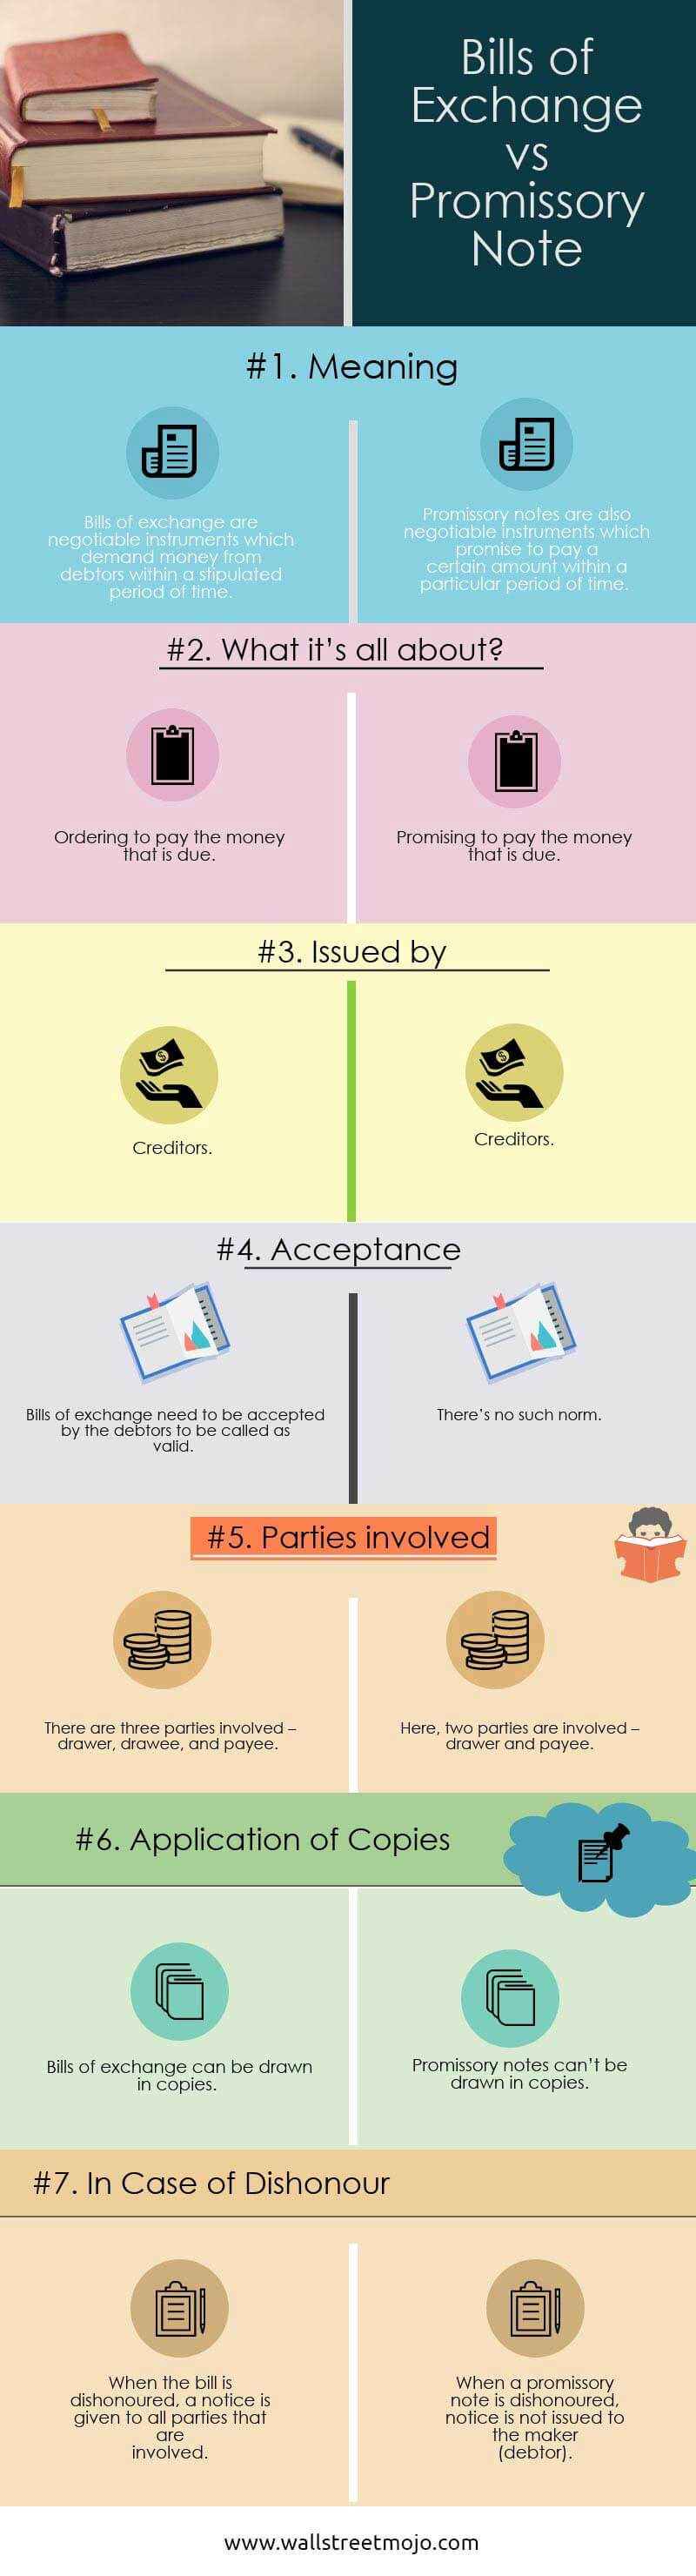 Bills of exchange vs promissory note top 7 differences bills of exchange vs promissory note altavistaventures Choice Image